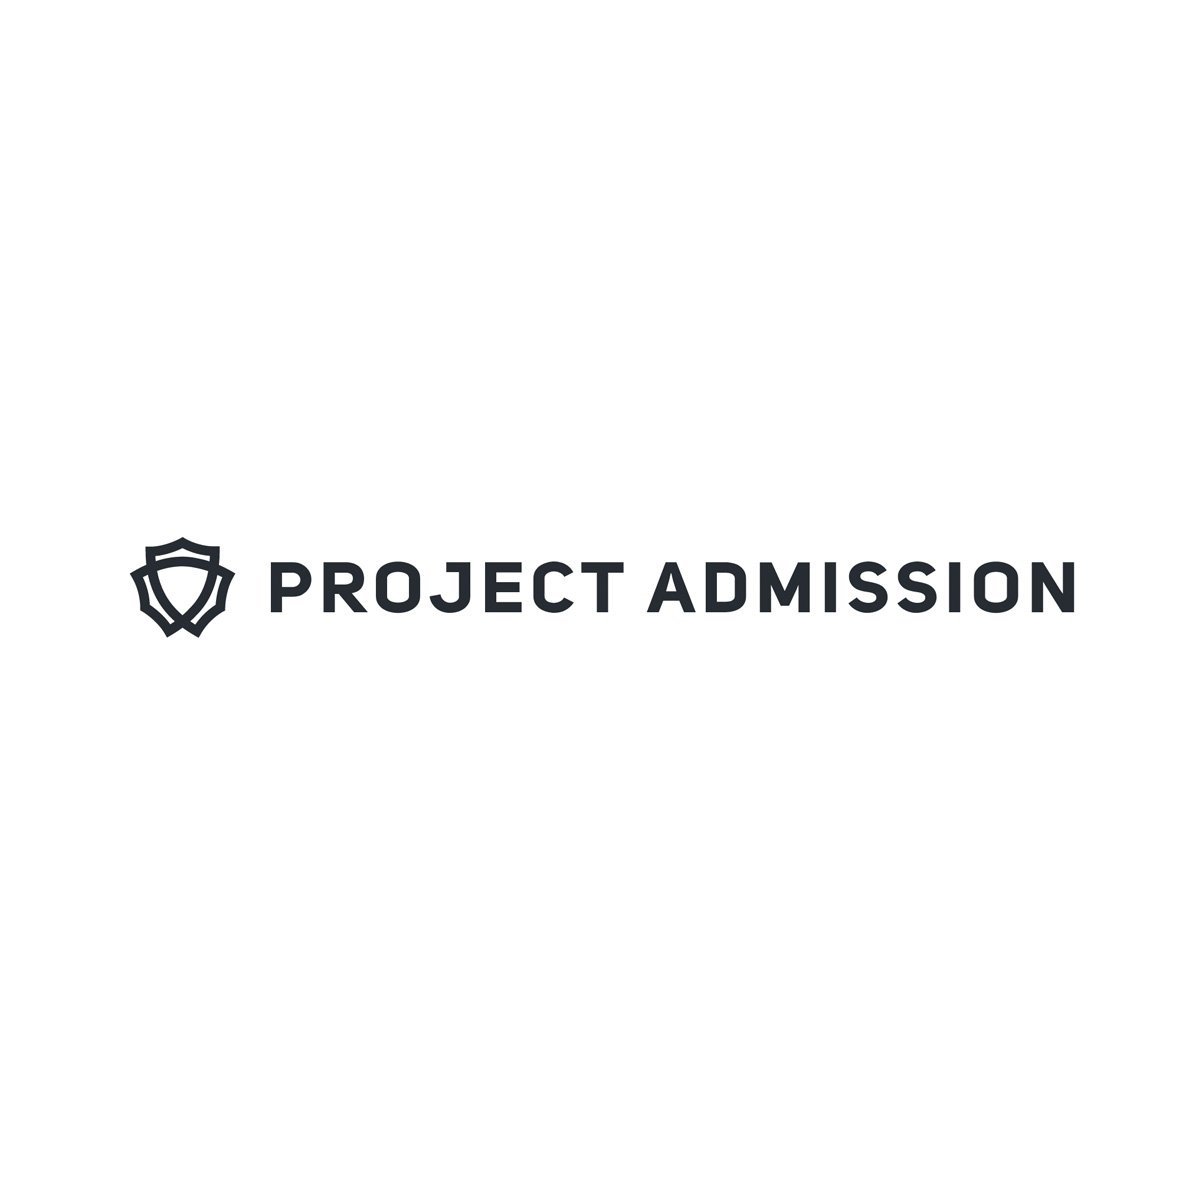 Project Admissions